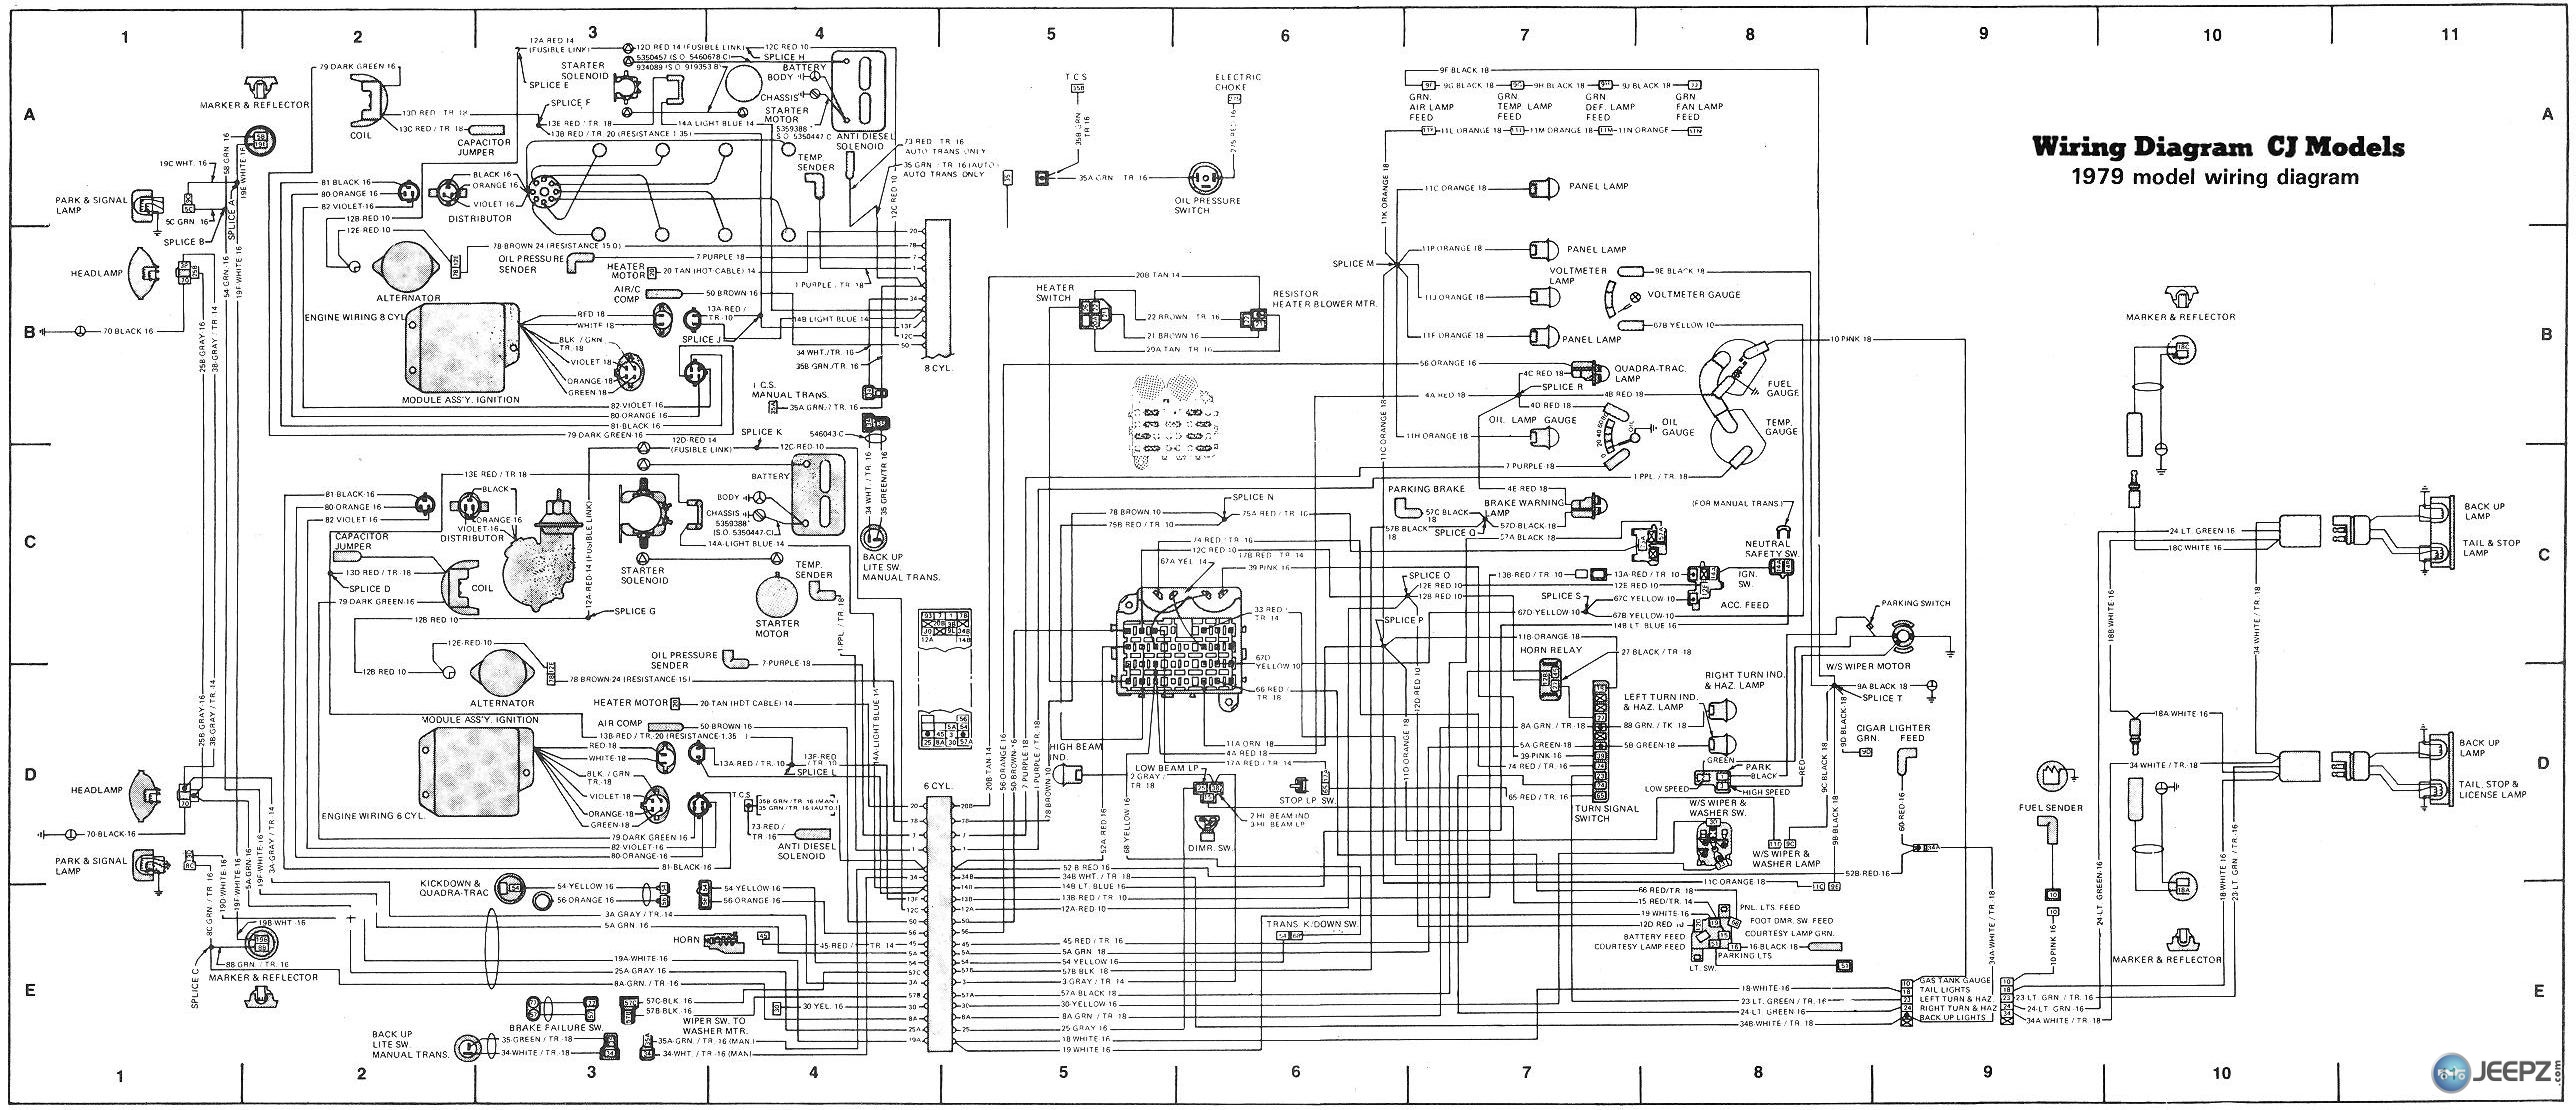 25758 Cj Headlight Wiring Colors also 94 Ford Explorer Transmission Diagram as well Ecm Wiring Diagram For 1993 Chevy C1500 4 3 moreover Check Engine Light Codes blogspot likewise 2003 Chevy Tahoe Window Regulator Diagram. on 1995 grand am wiring diagram